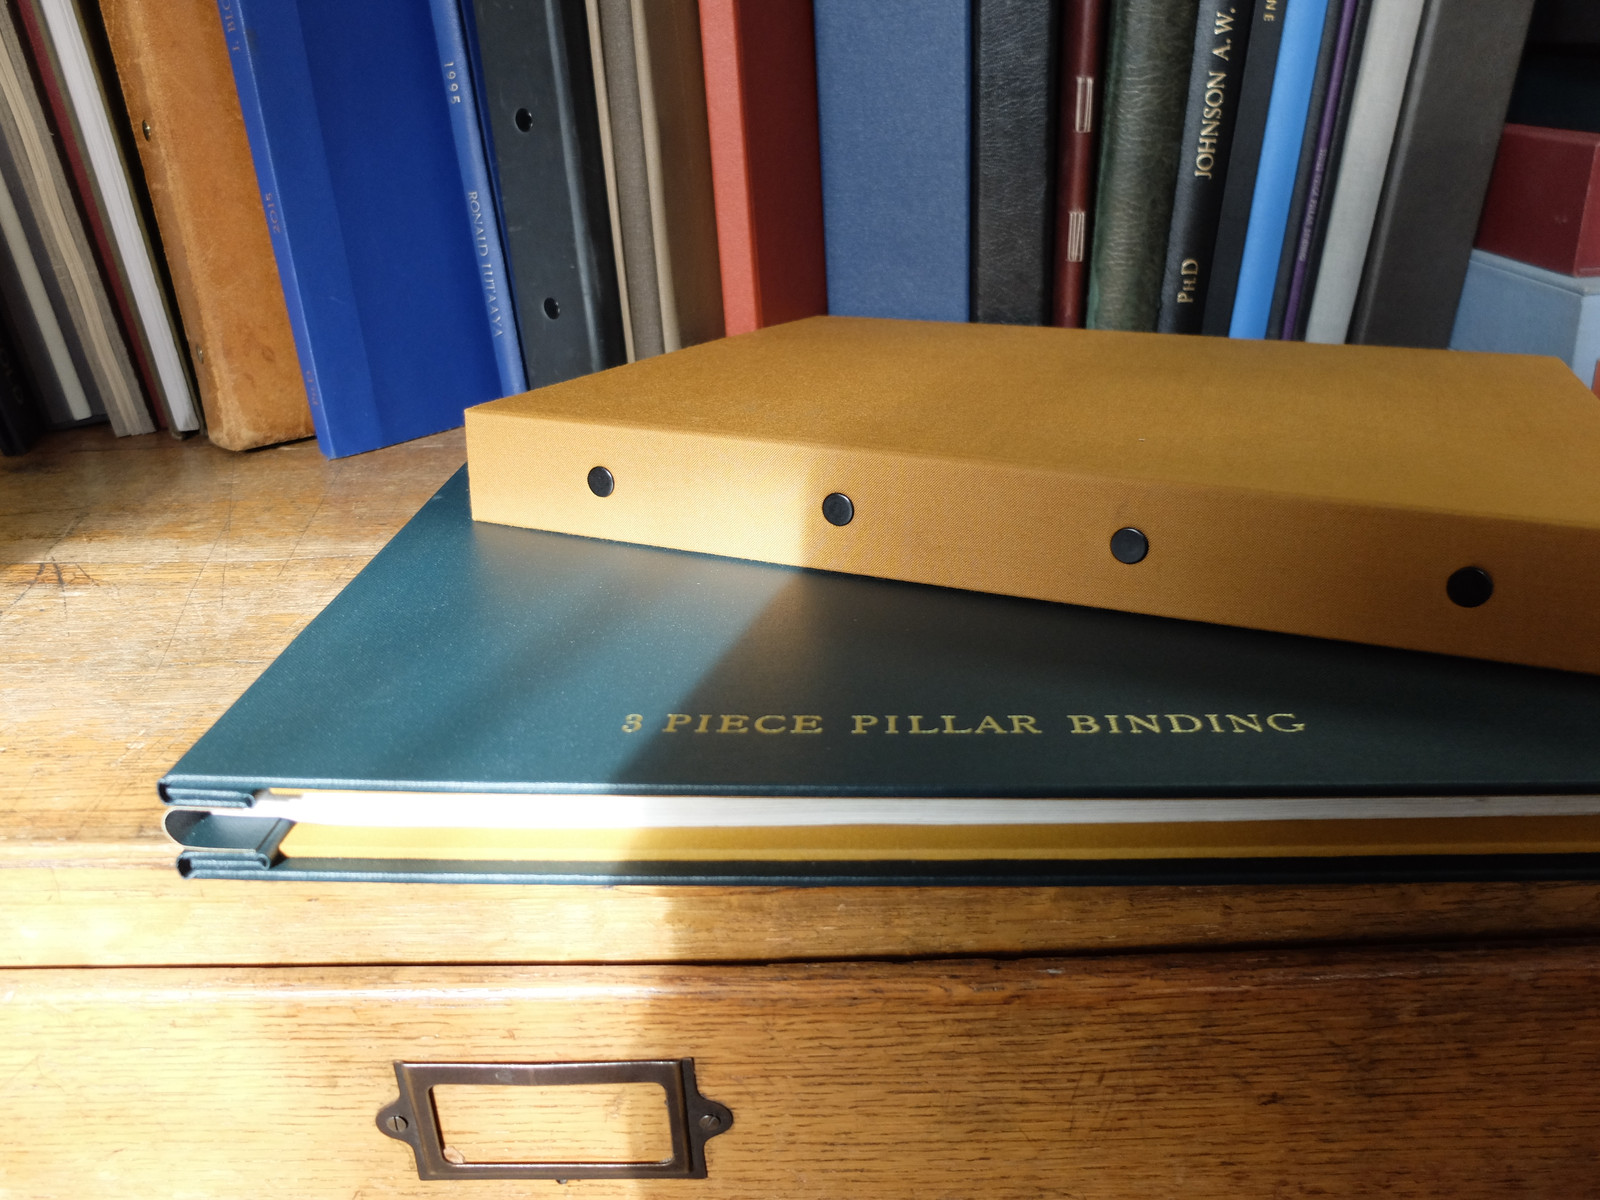 thesis binding clerkenwell